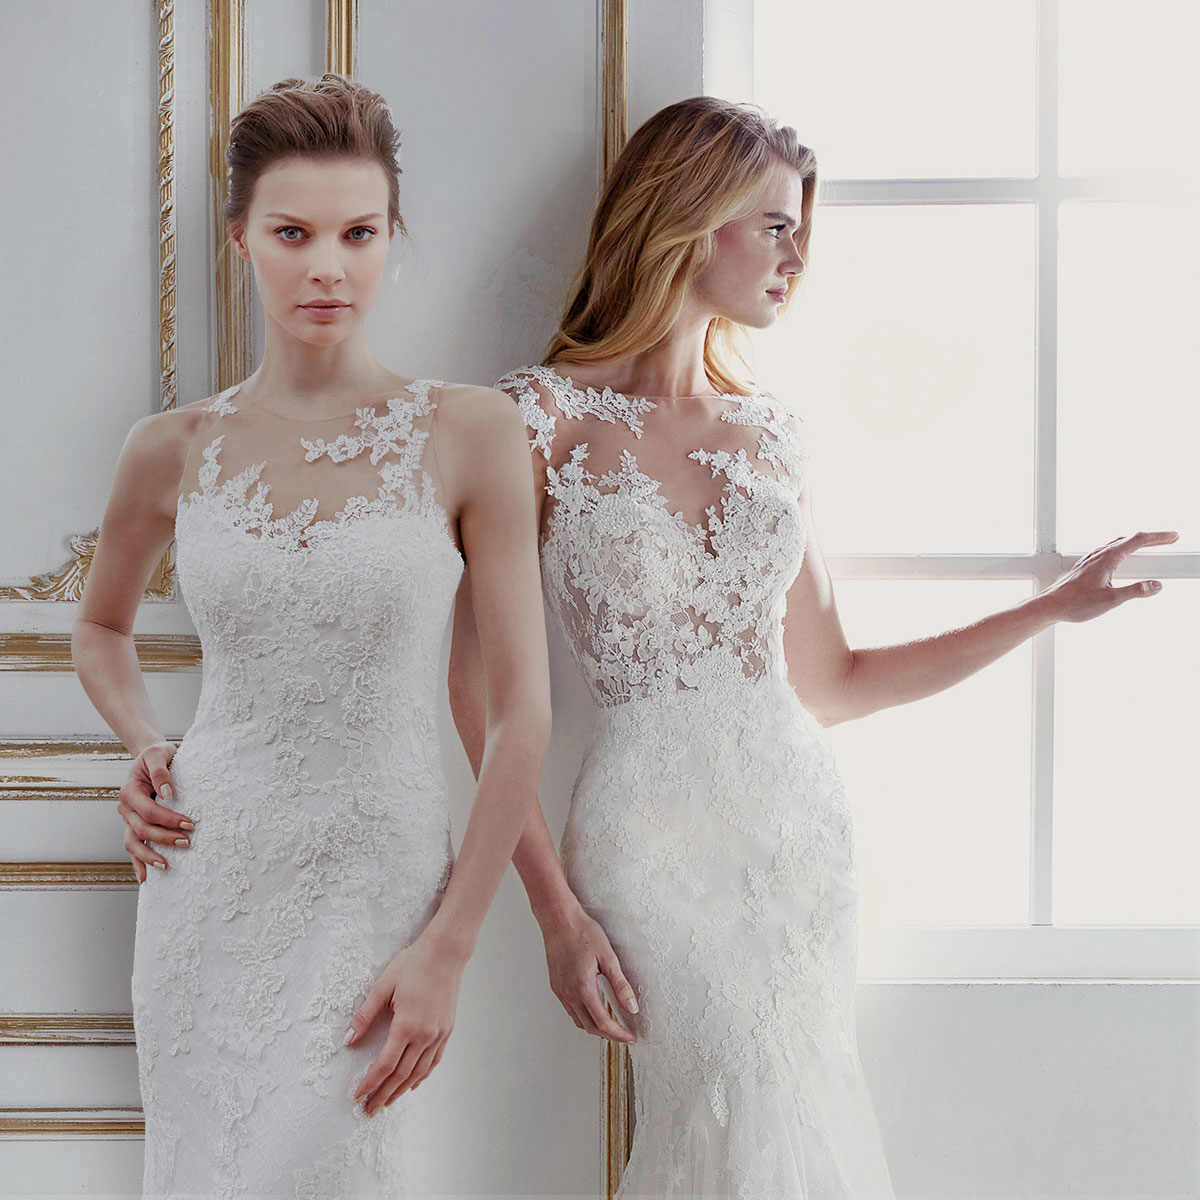 Luxurious Lace Wedding Dress Trend